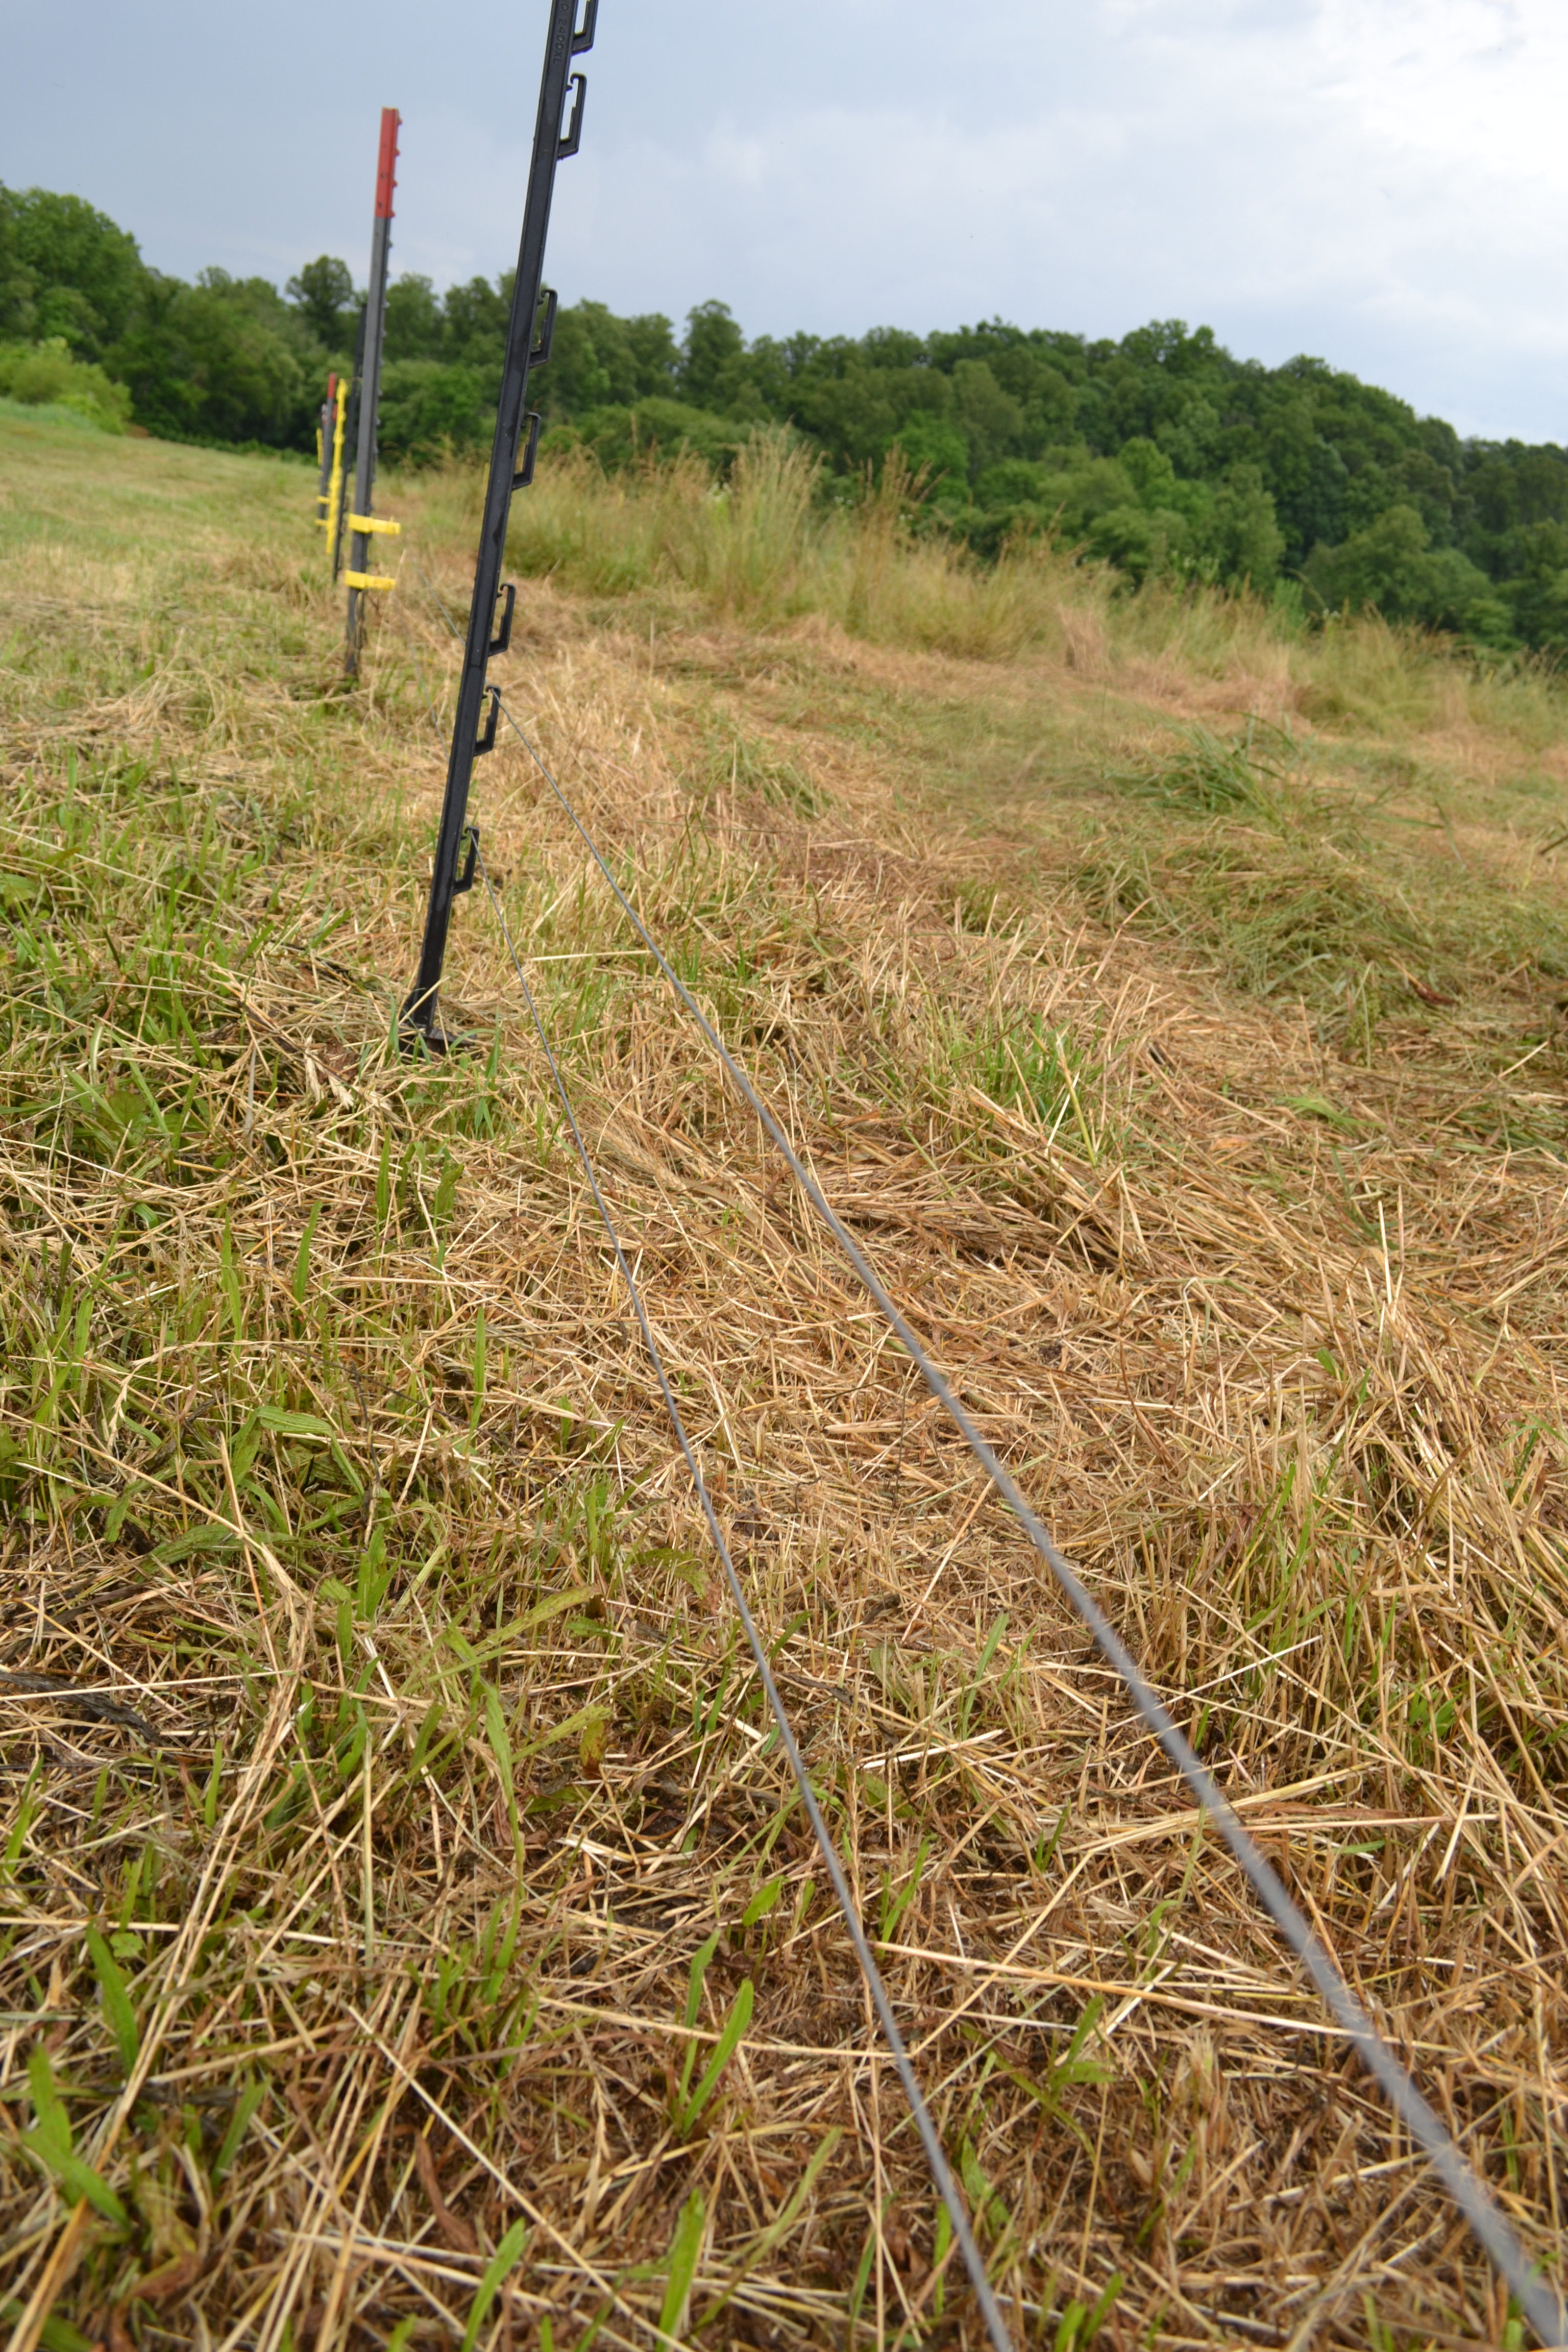 Single wire fence for met pigs on pasture. |